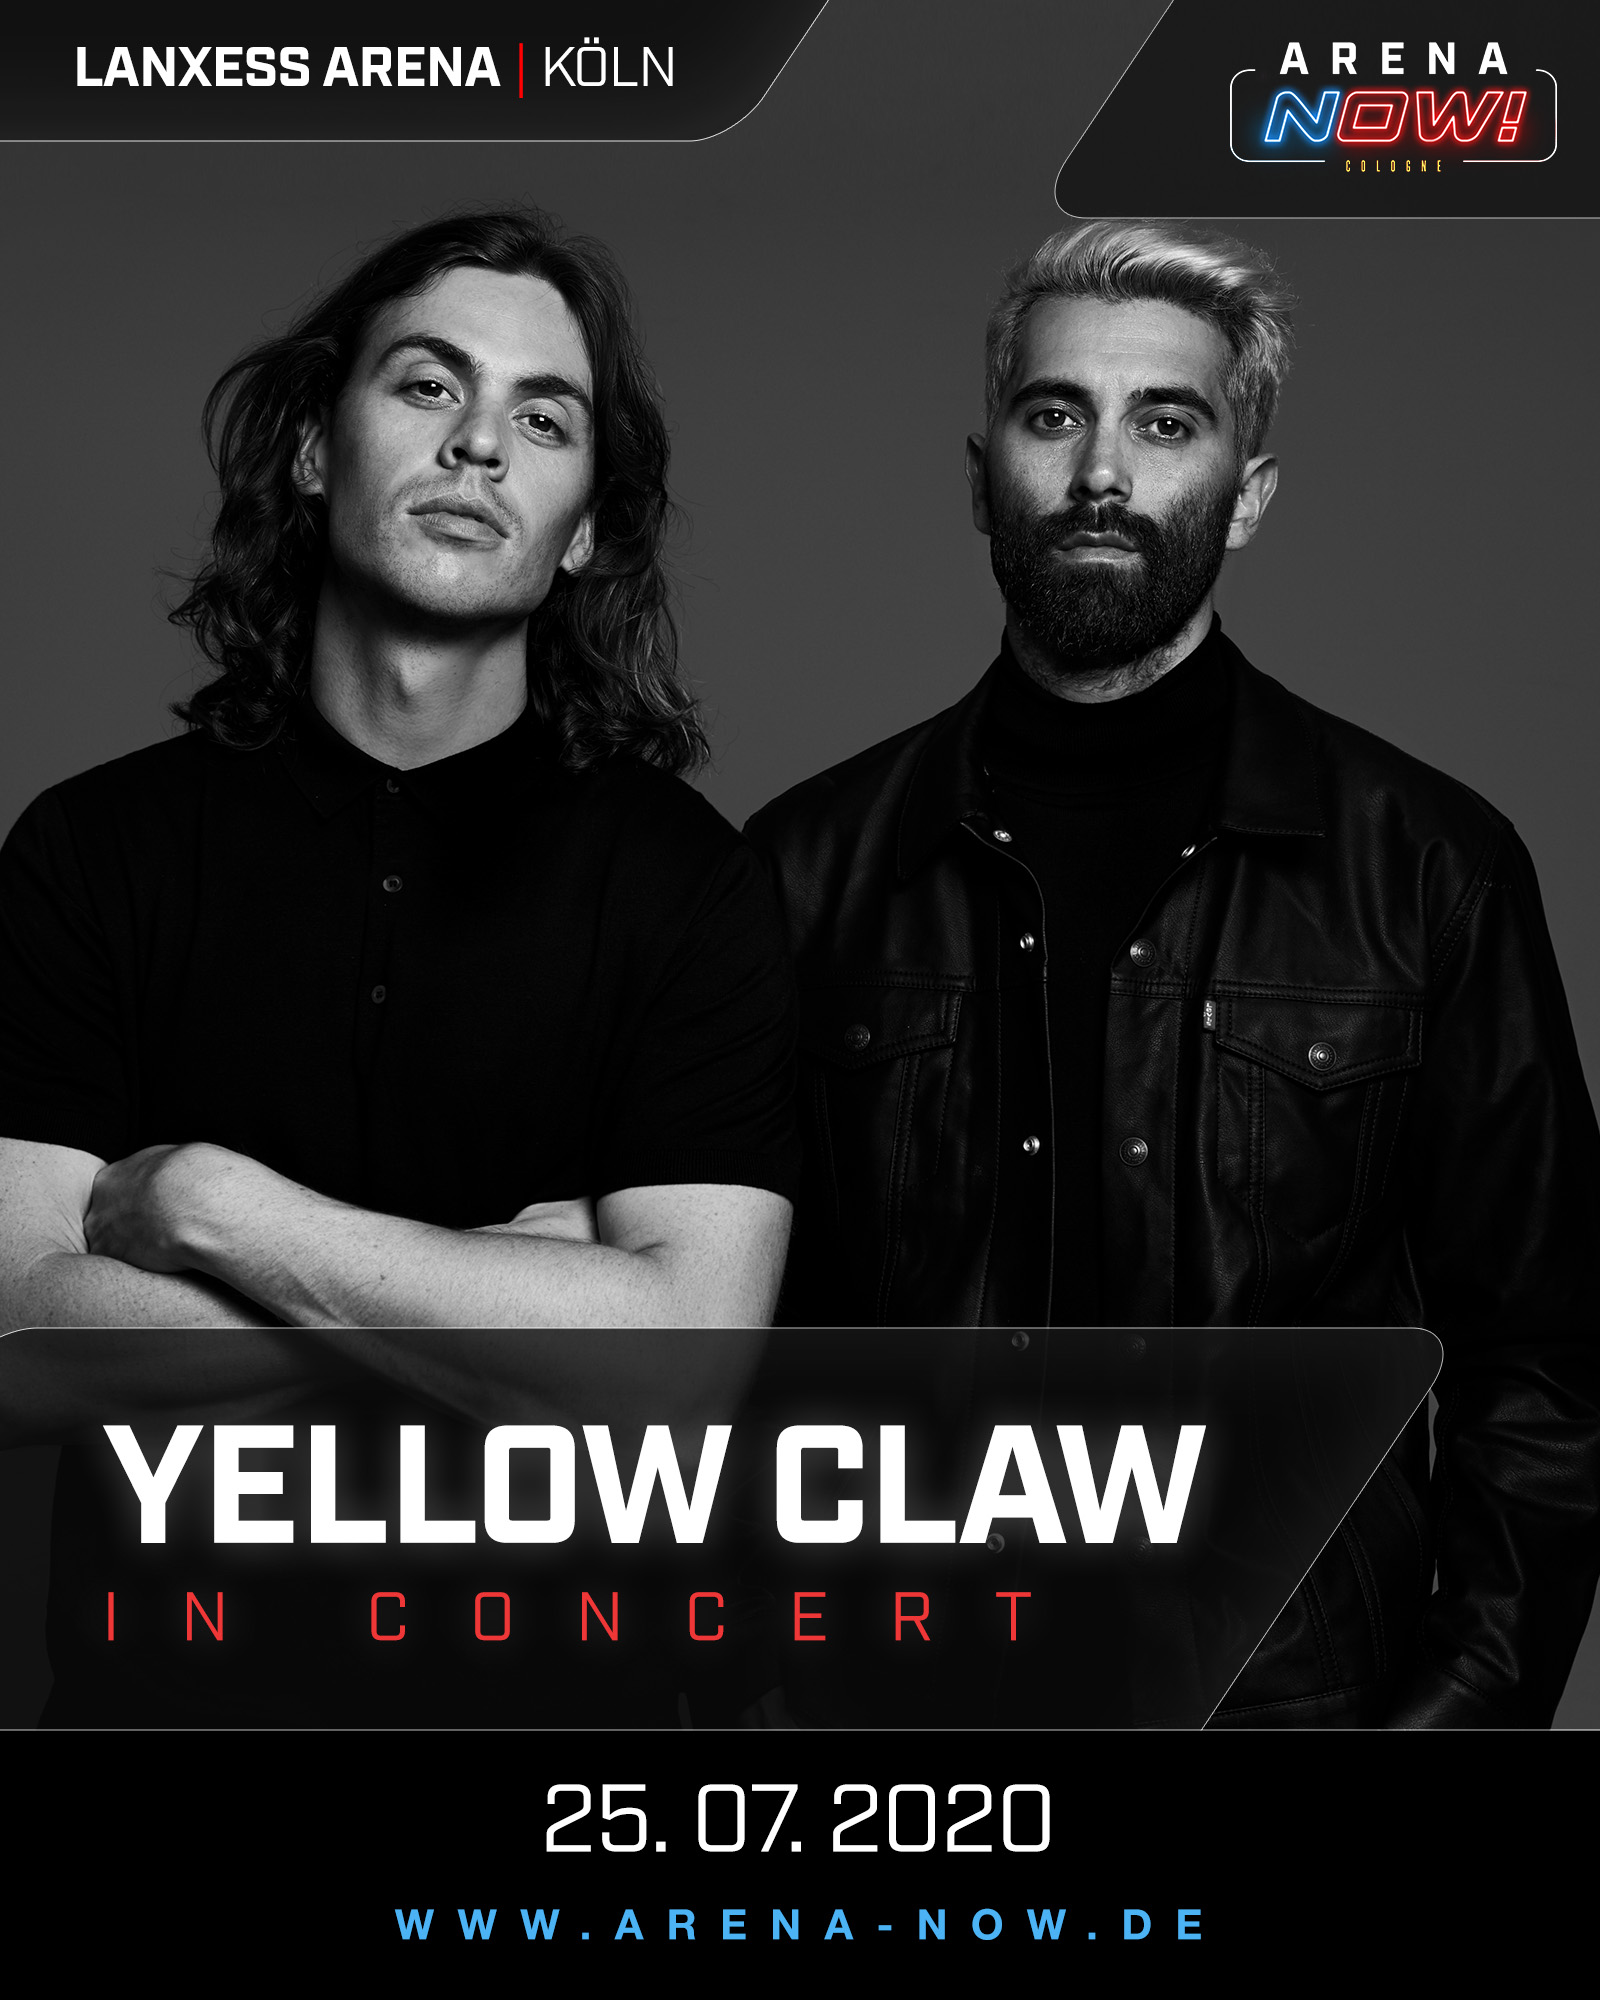 Yellow Claw Arena Now